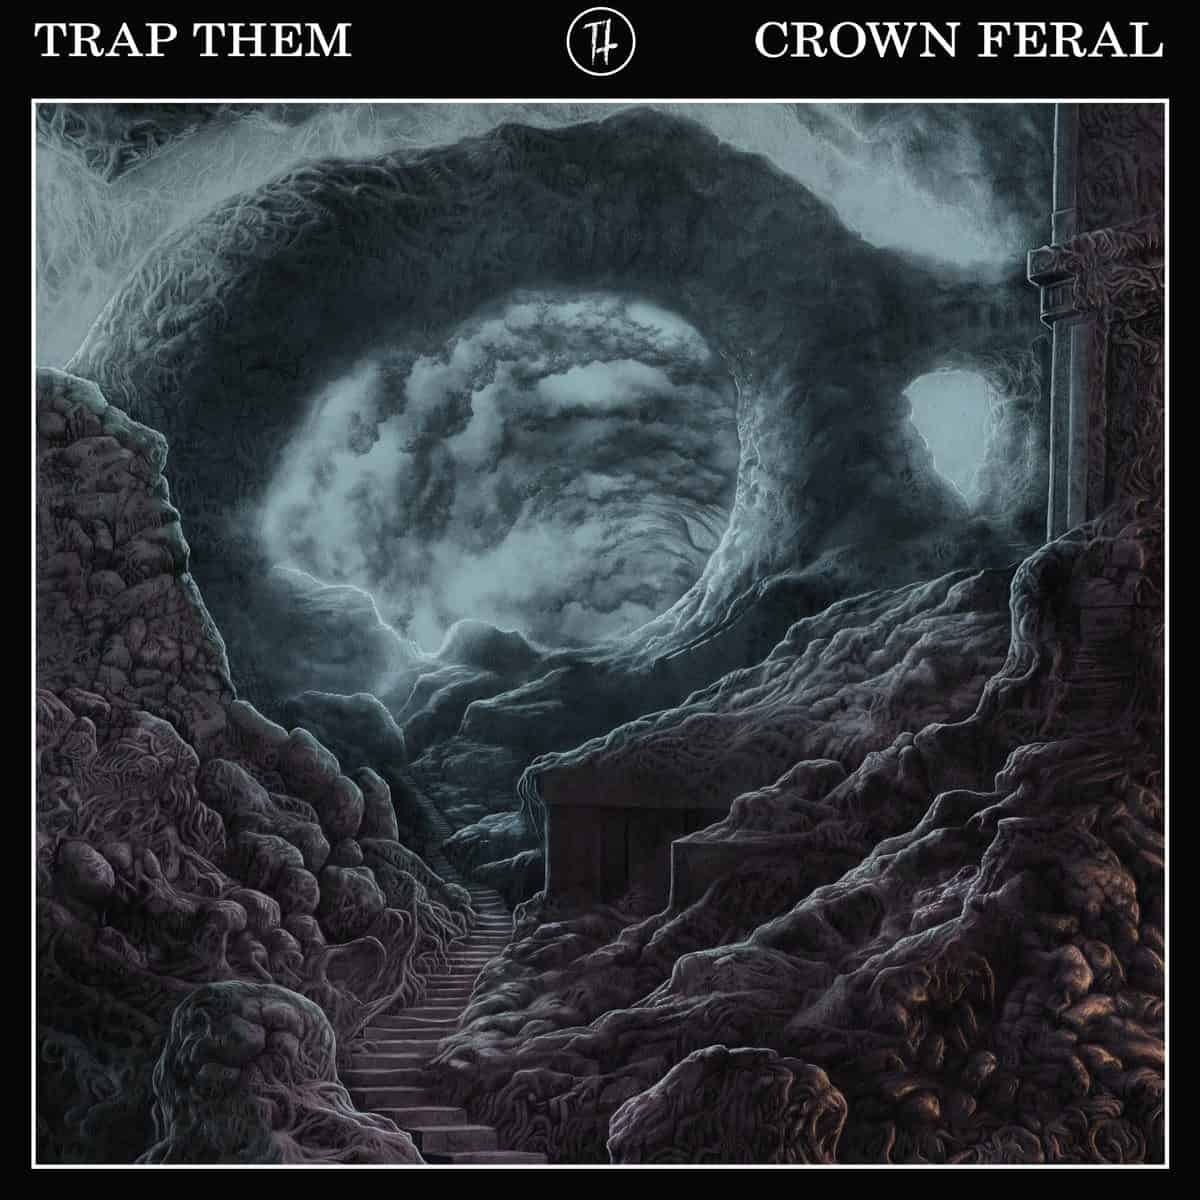 Album Review: Trap Them – Crown Feral (Prosthetic Records)